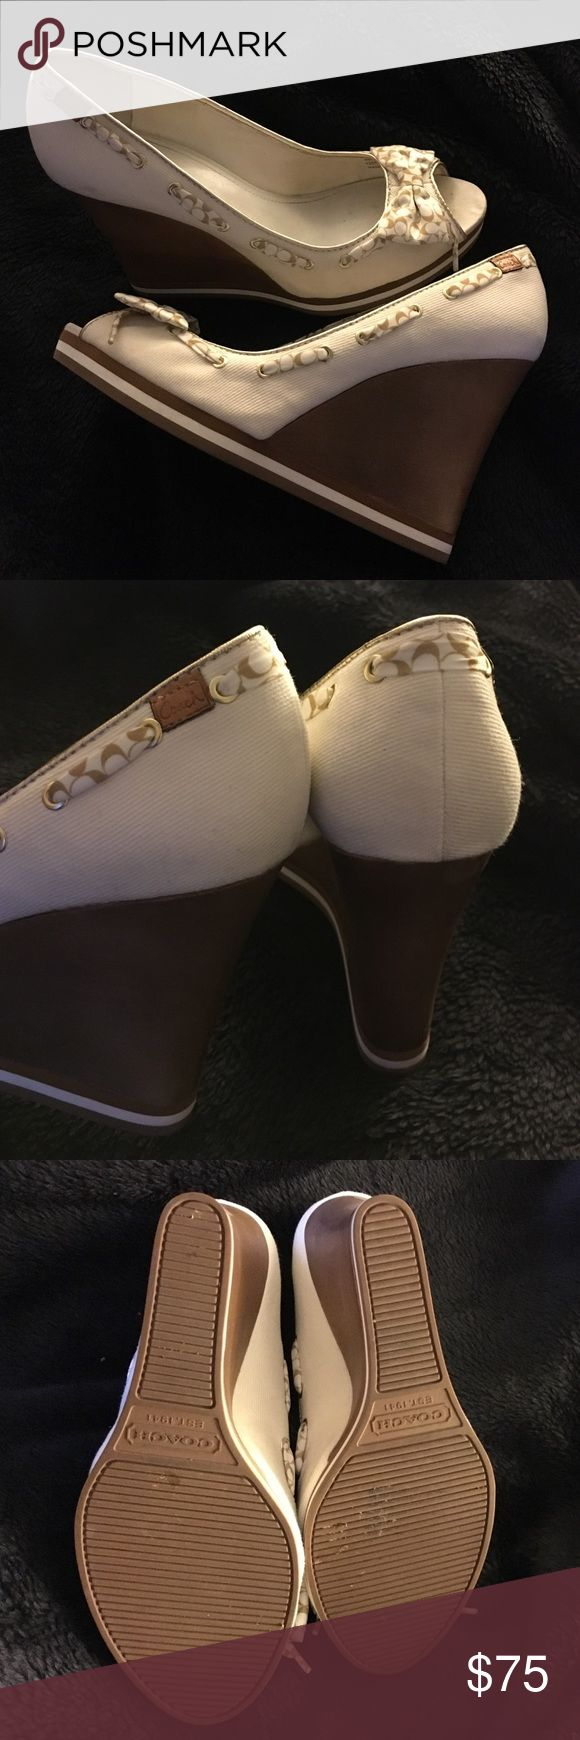 OFFER ME  Coach Thalia wedge Pre loved in box. See pictures Make an offer. Bundle and save! Free shipping on ♏️ercari Coach Shoes Wedges